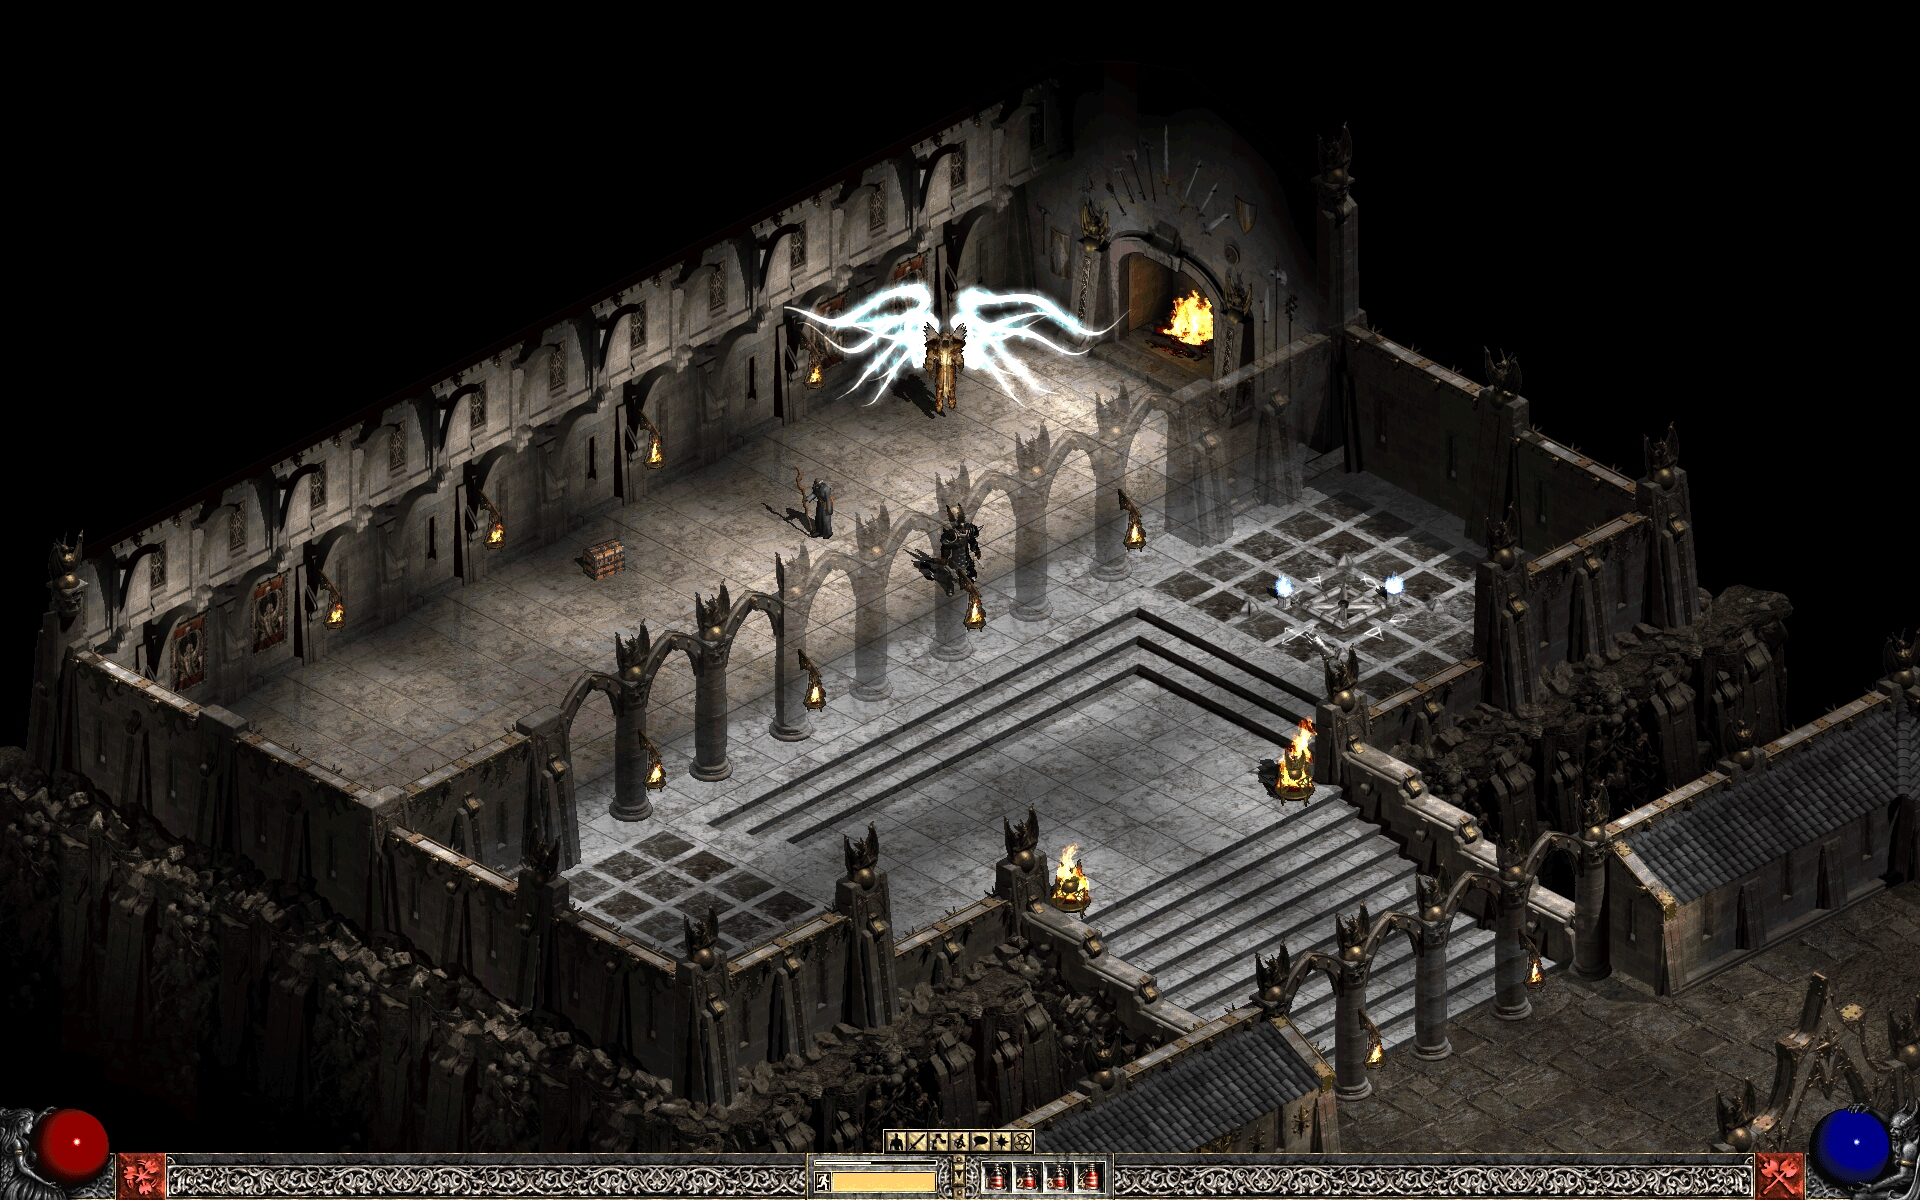 diablo 2 free download with multiplayer